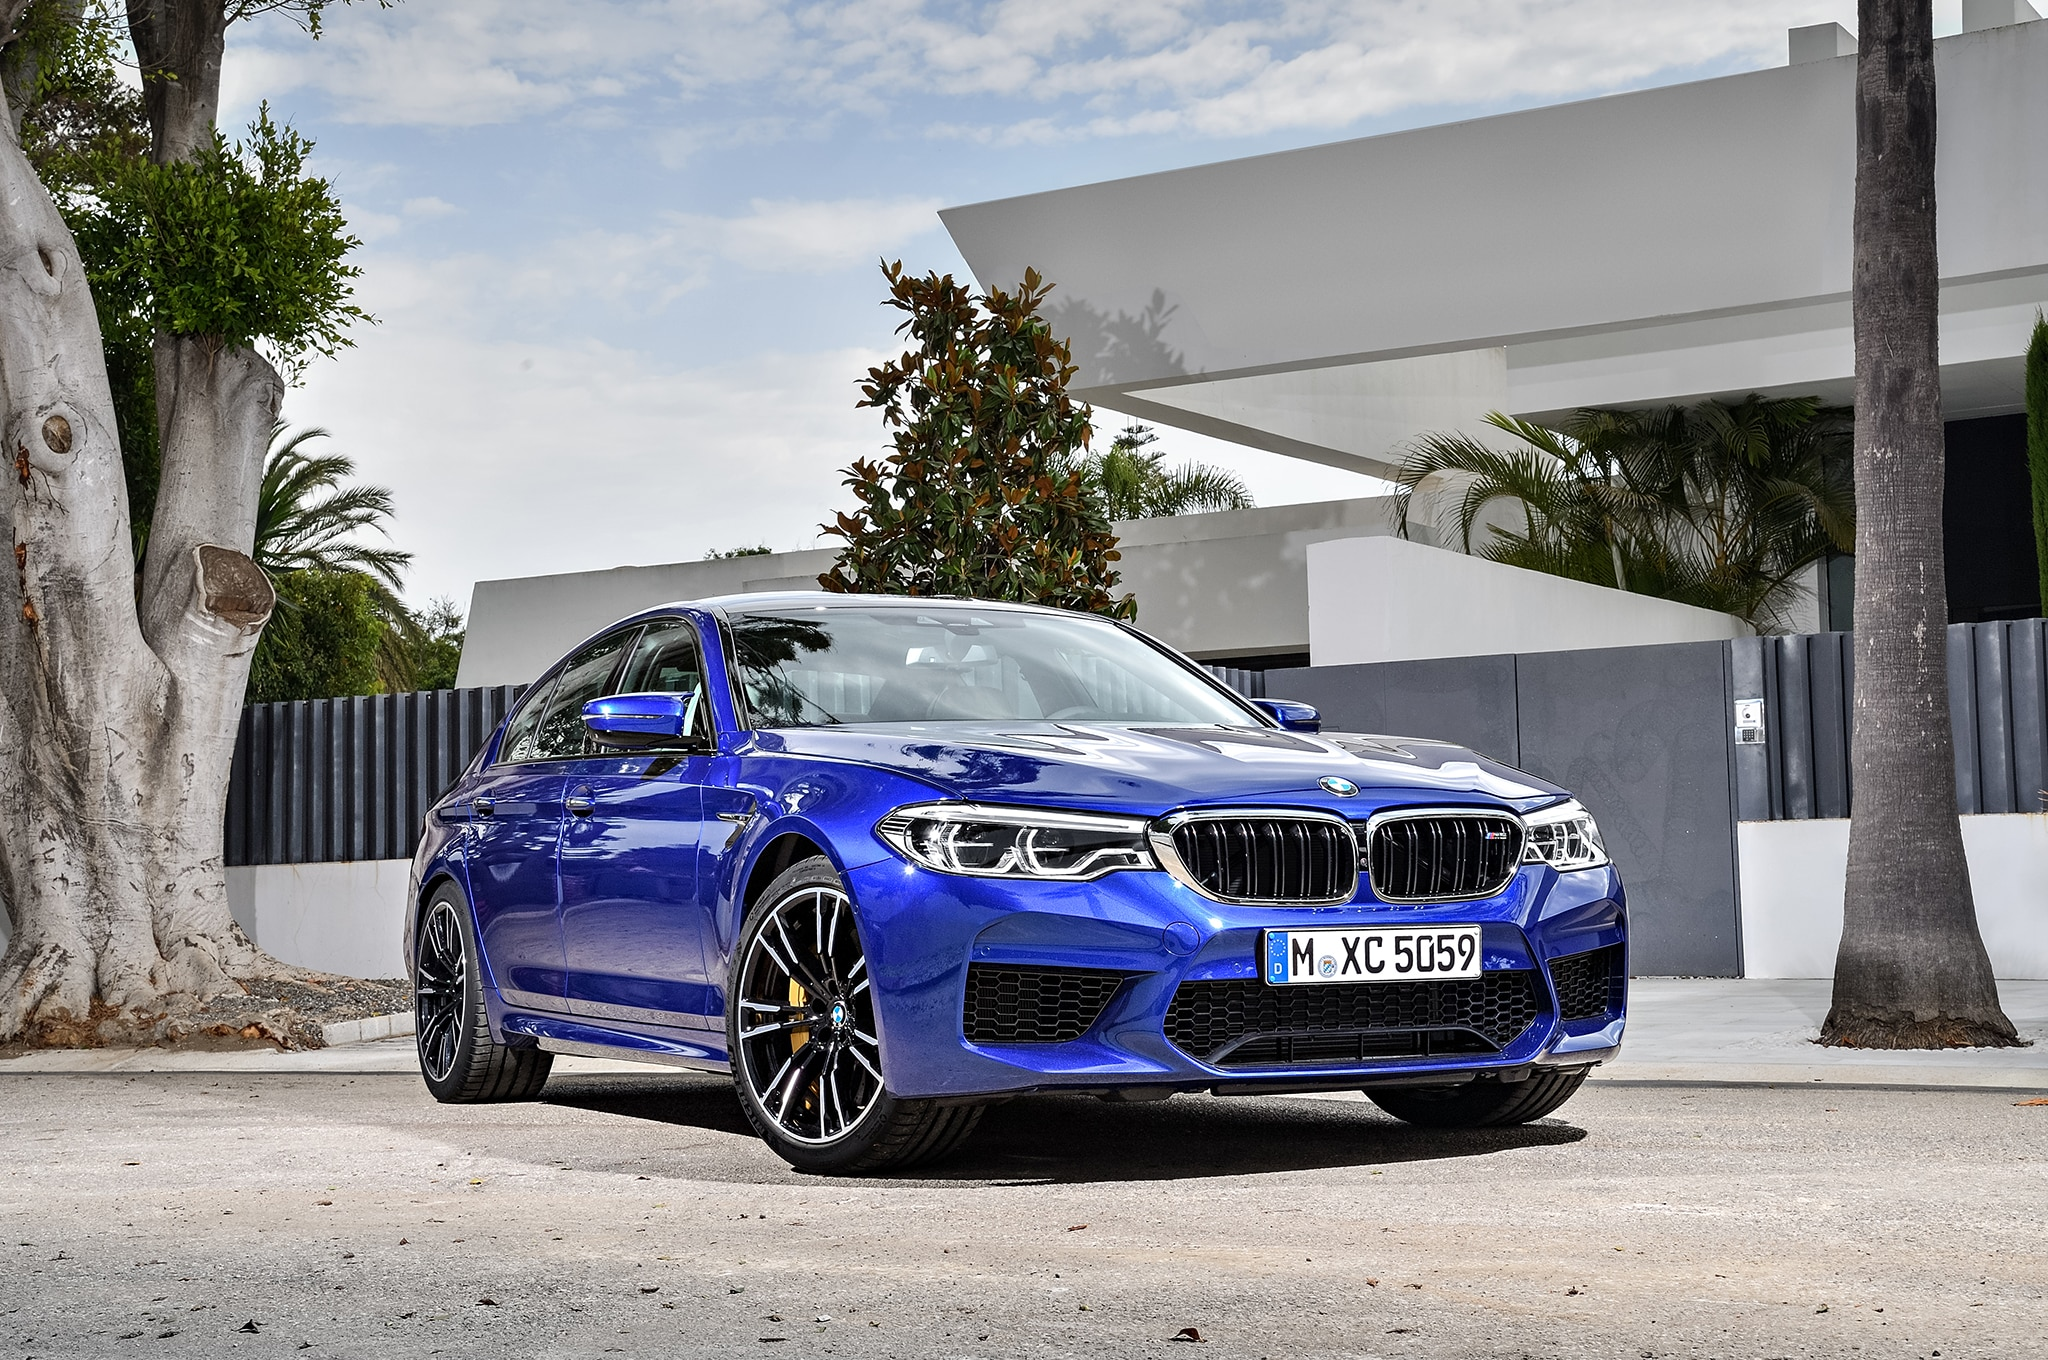 2018 Bmw M5 Arrives Packing A 600 Hp Twin Turbo V 8